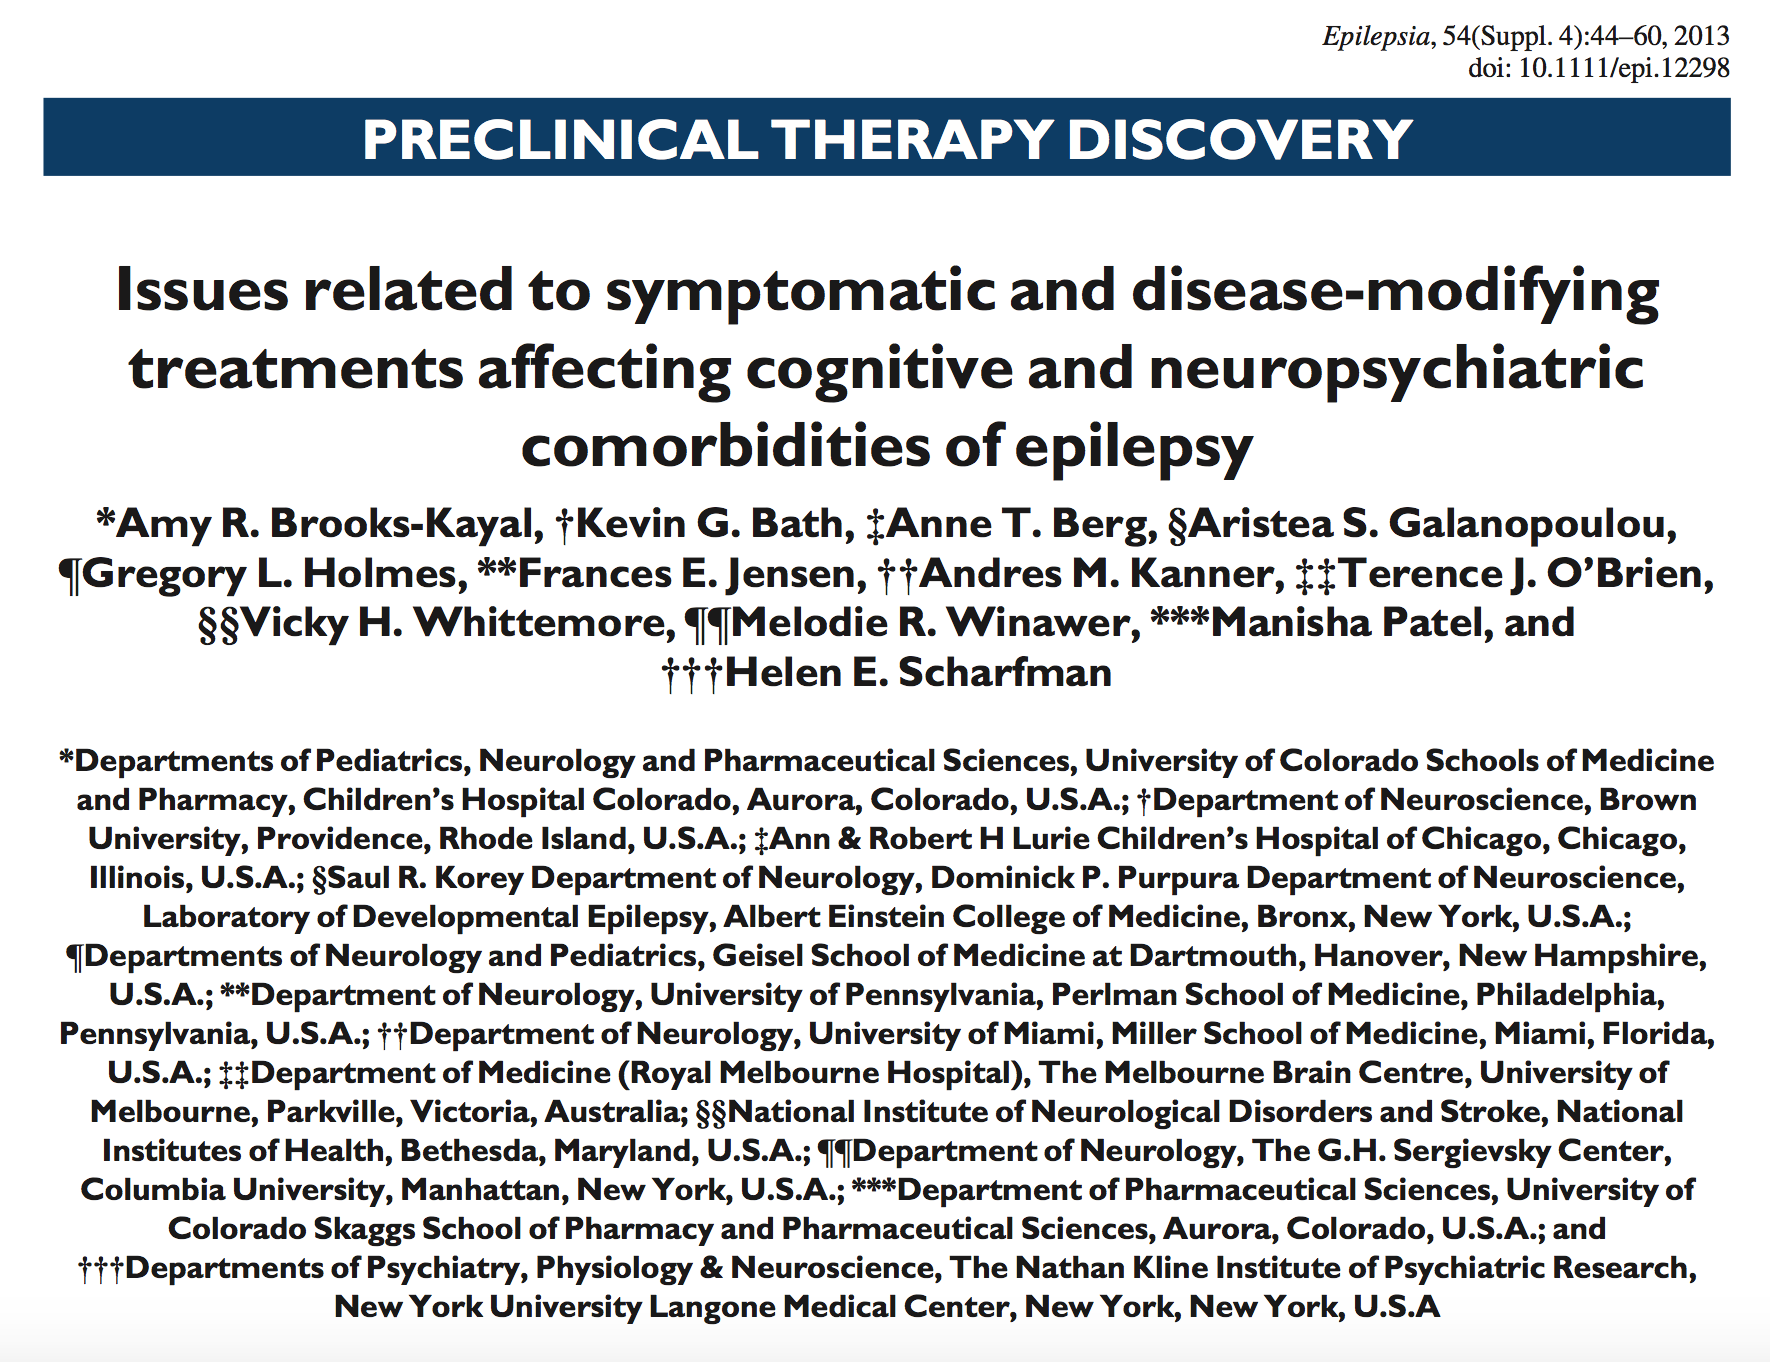 Brooks-Kayal et al., 2013.     Epilepsia.